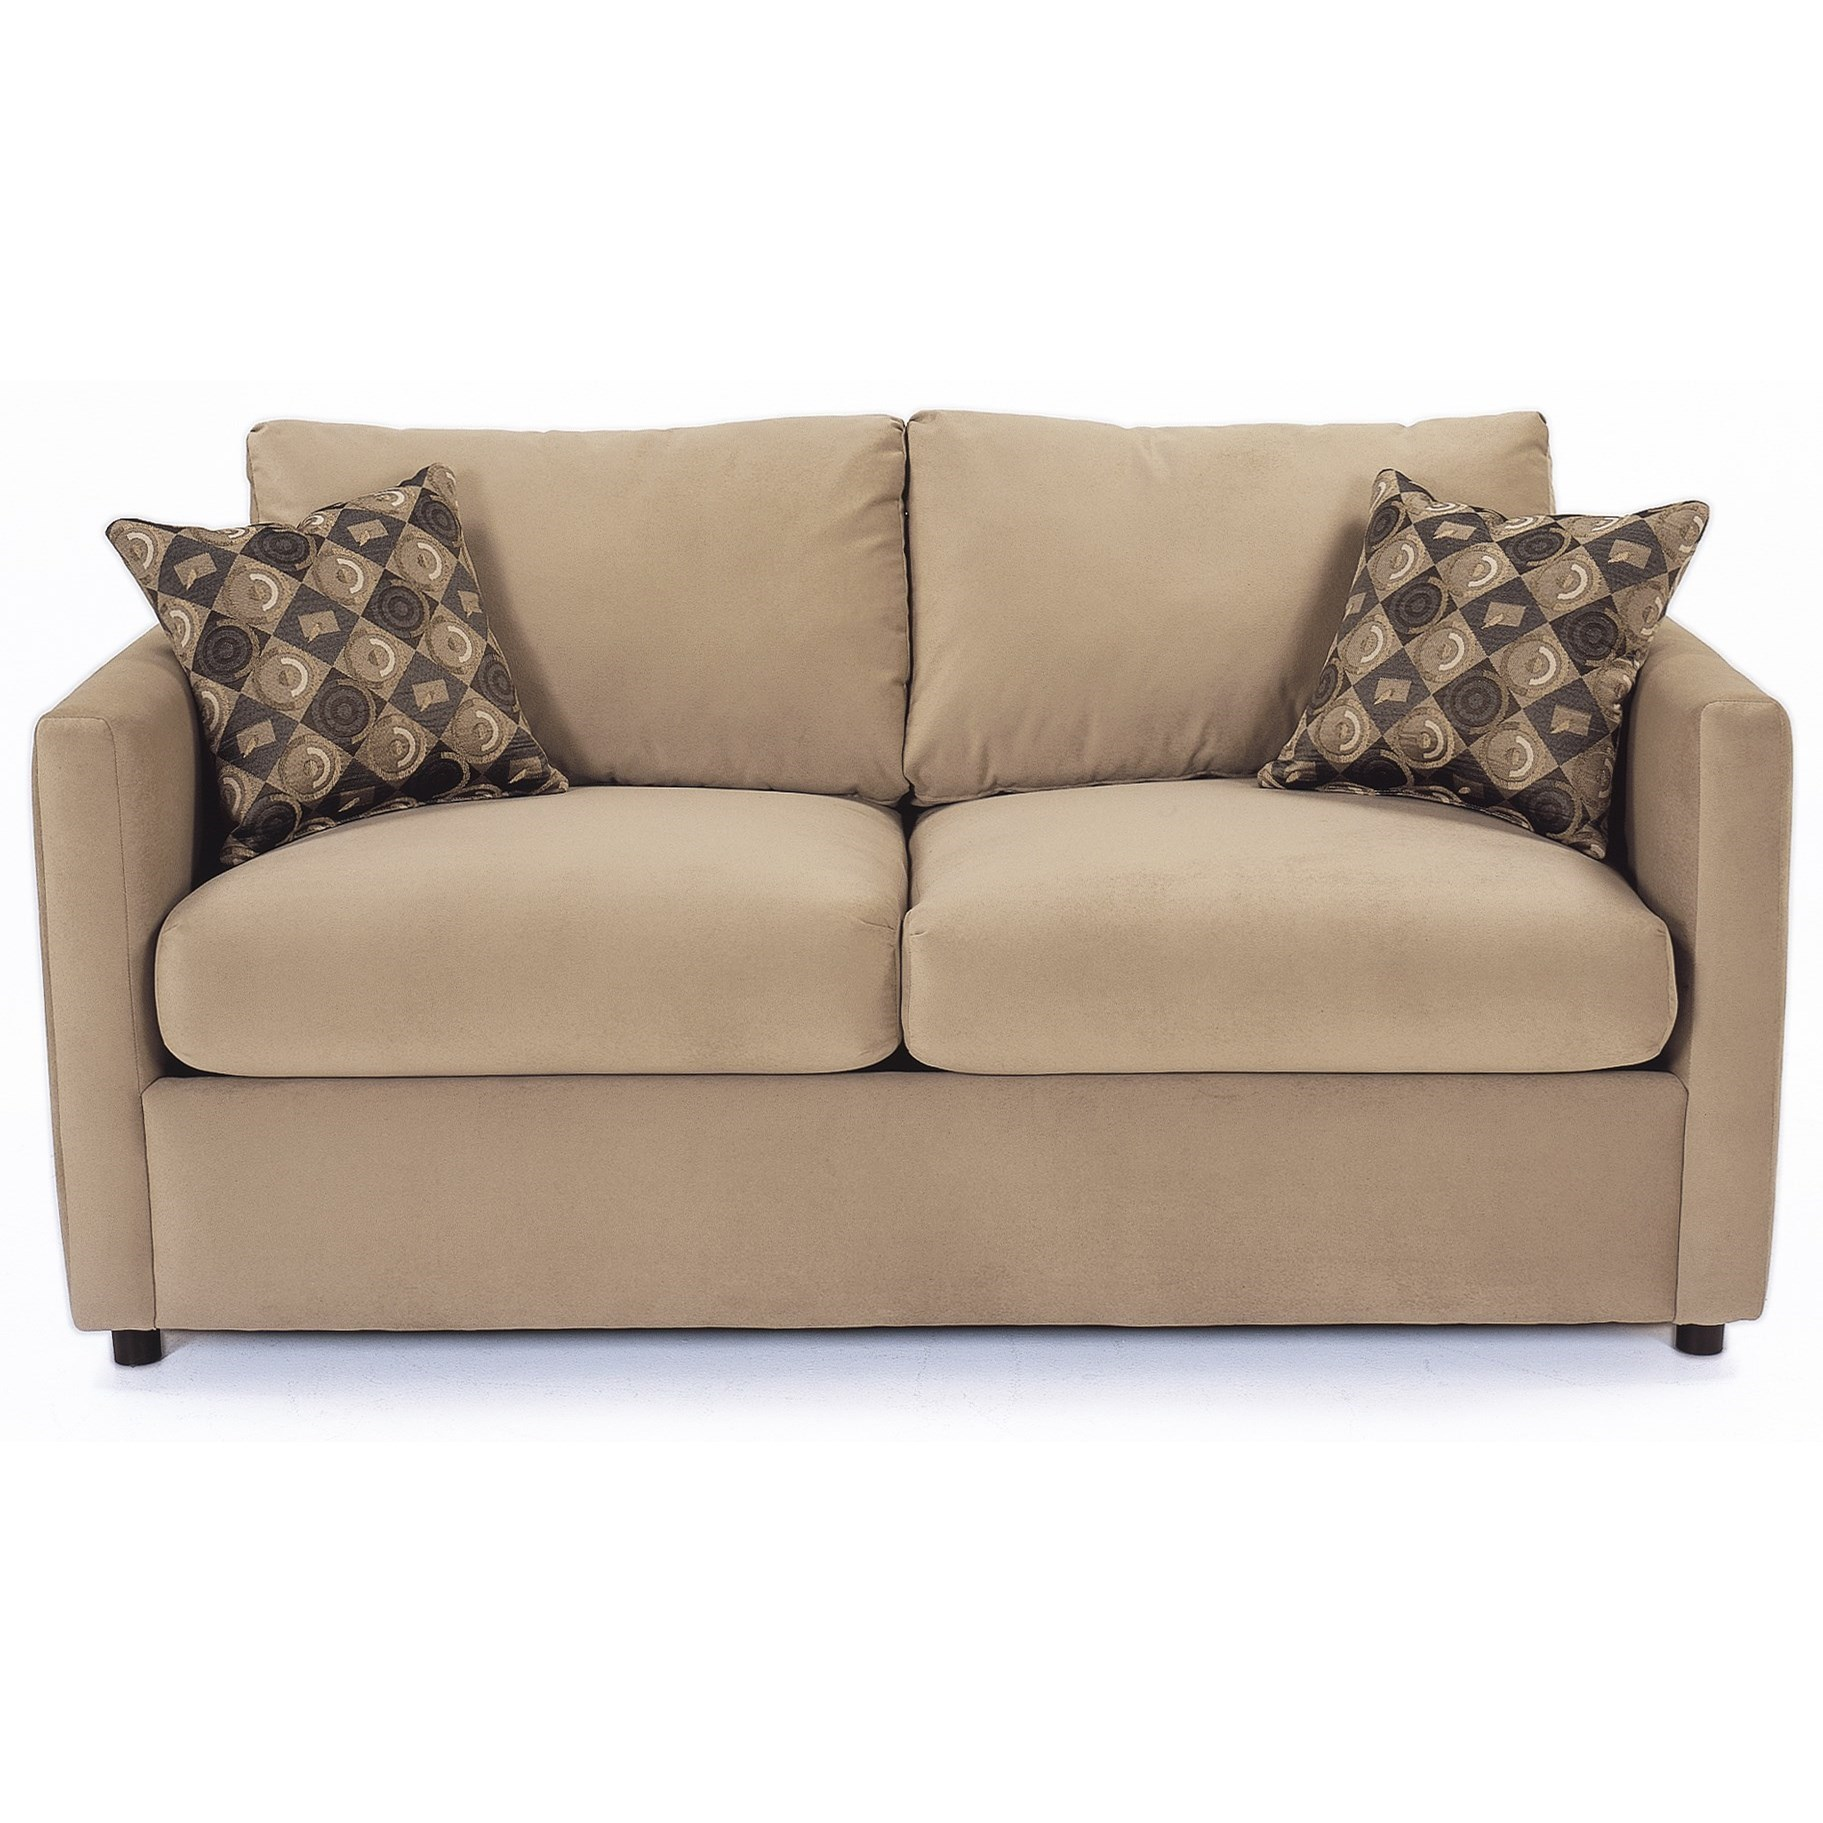 Rowe StockdaleSleeper Sofa ...